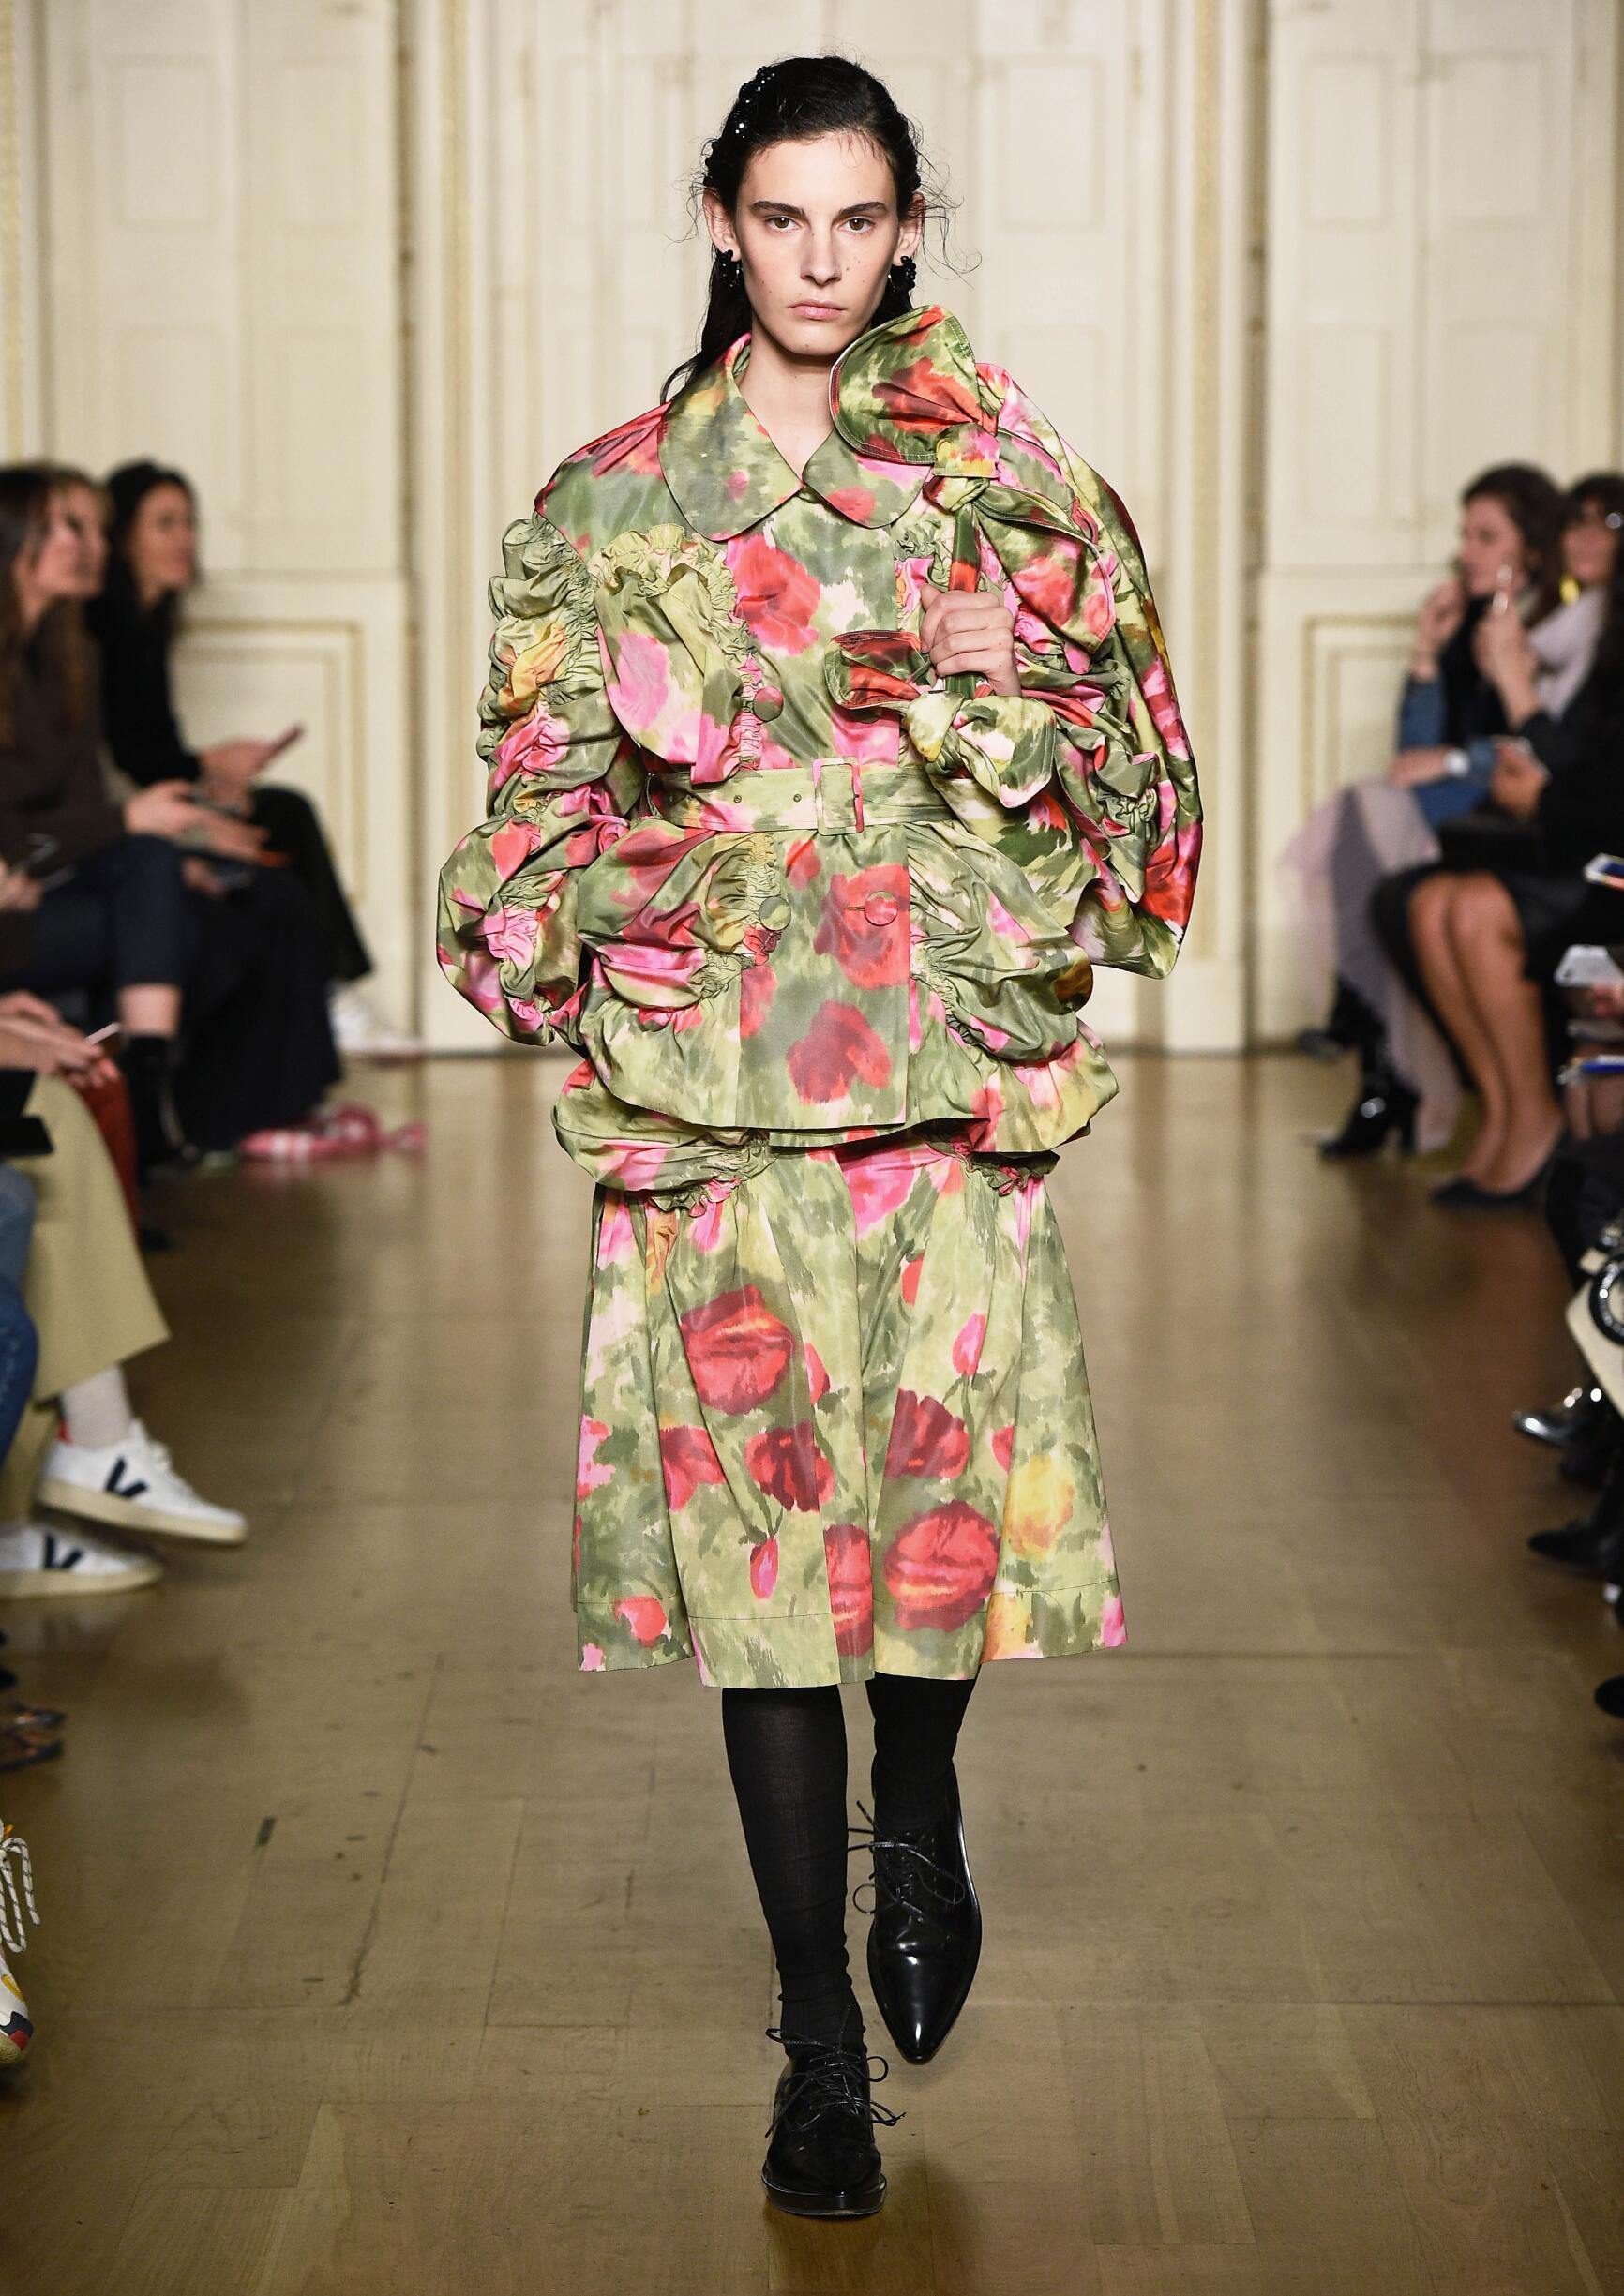 Fashion Show Woman Model Simone Rocha Catwalk